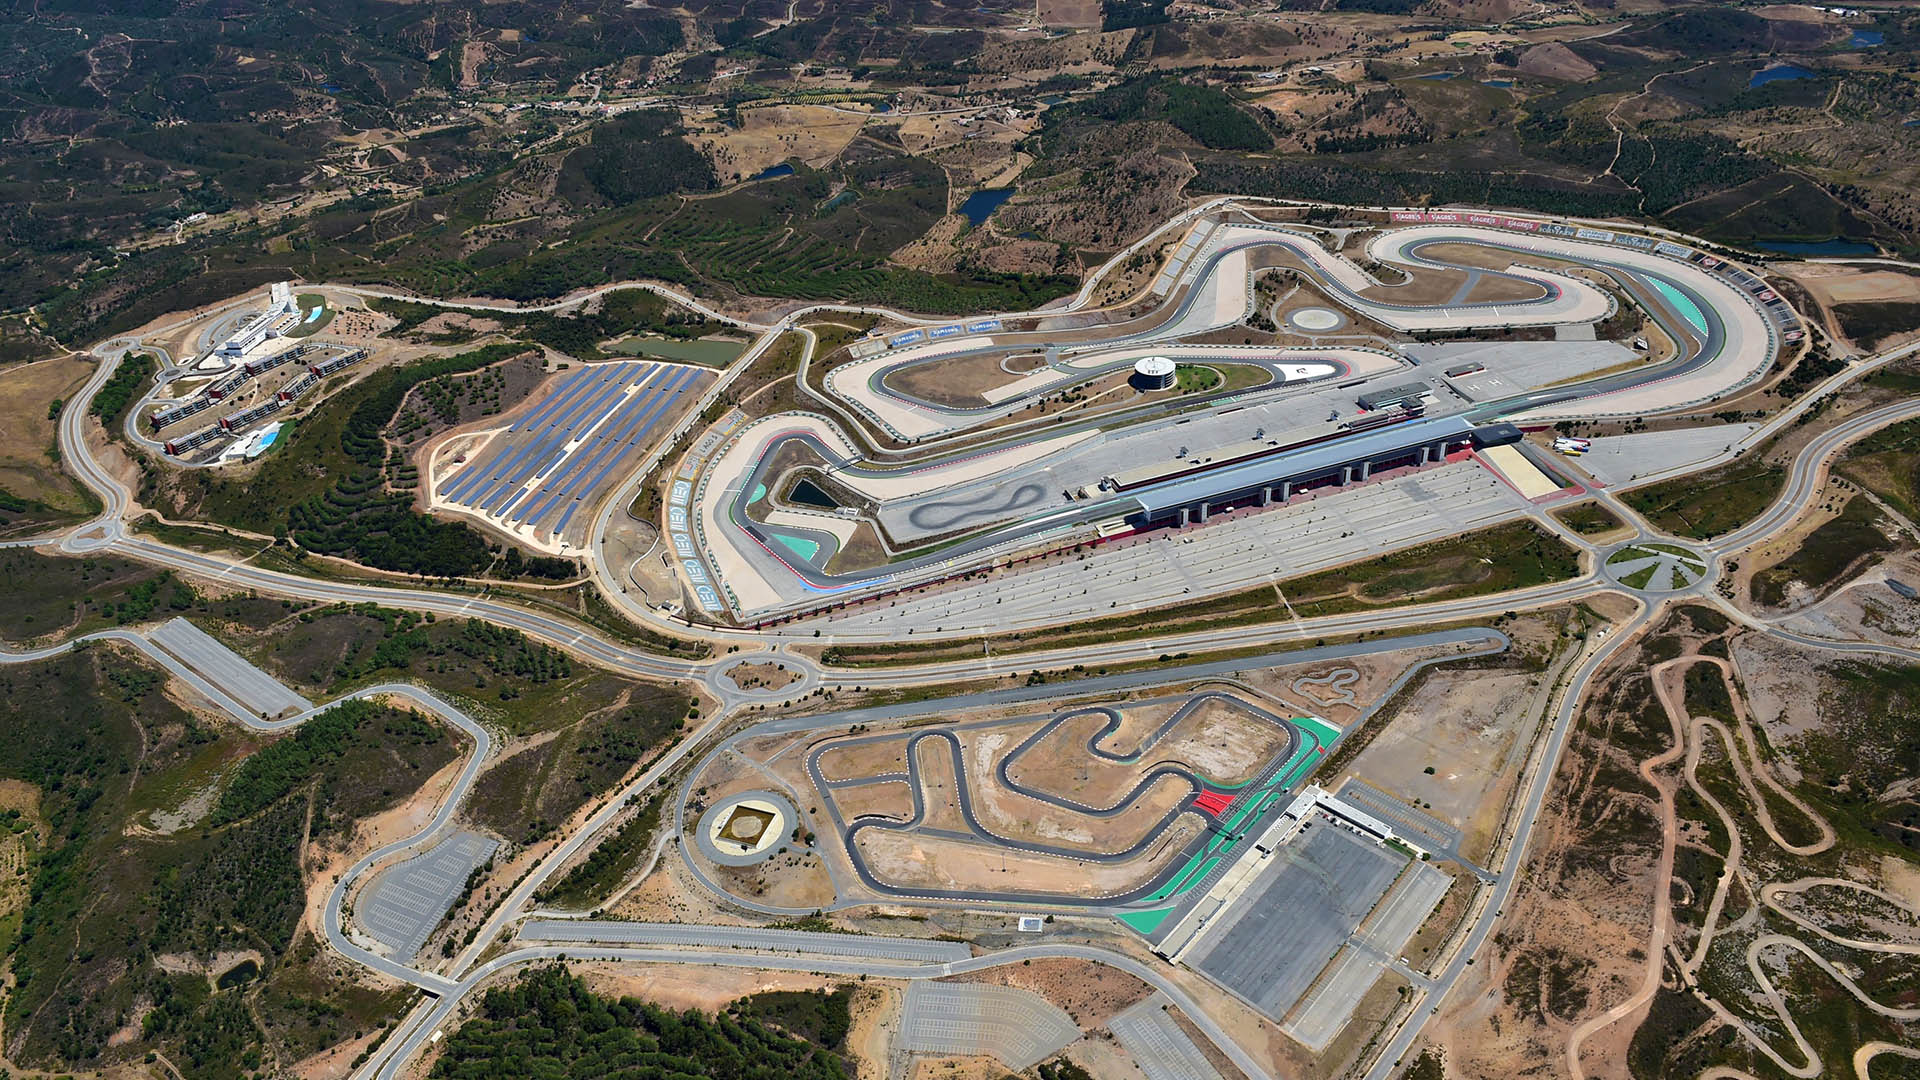 Algarve Motorsports Park & Facilities